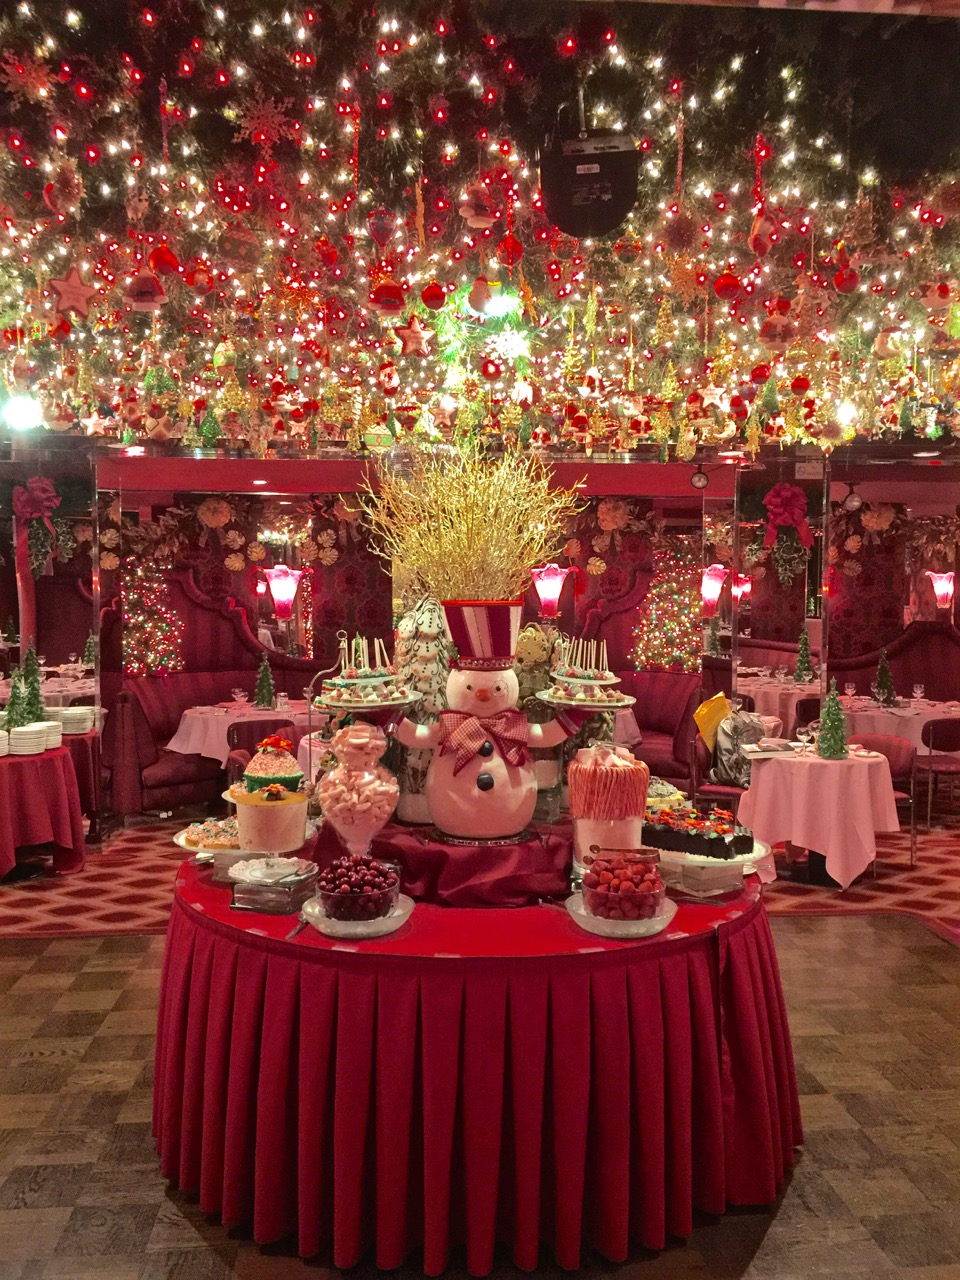 The Holiday Dessert Buffet